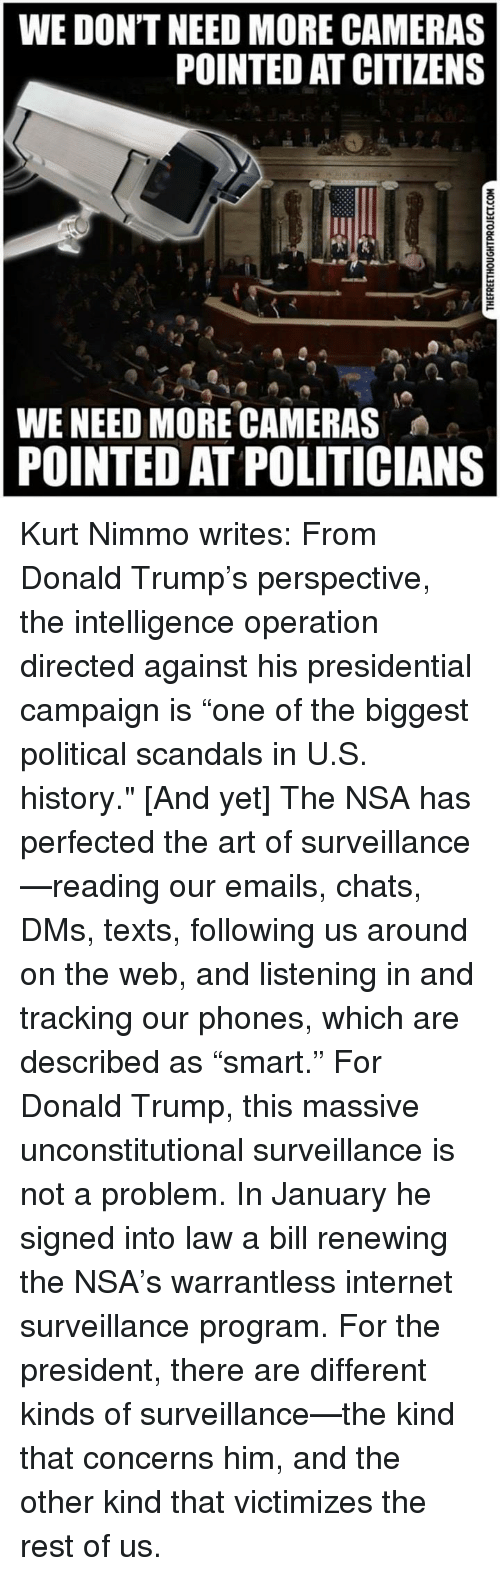 """Donald Trump, Internet, and Memes: WE DON'T NEED MORE CAMERAS  POINTED AT CITIZENS  WE NEED MORE CAMERAS  POINTED AT POLITICIANS Kurt Nimmo writes:  From Donald Trump's perspective, the intelligence operation directed against his presidential campaign is """"one of the biggest political scandals in U.S. history.""""  [And yet]  The NSA has perfected the art of surveillance—reading our emails, chats, DMs, texts, following us around on the web, and listening in and tracking our phones, which are described as """"smart.""""   For Donald Trump, this massive unconstitutional surveillance is not a problem.  In January he signed into law a bill renewing the NSA's warrantless internet surveillance program. For the president, there are different kinds of surveillance—the kind that concerns him, and the other kind that victimizes the rest of us."""